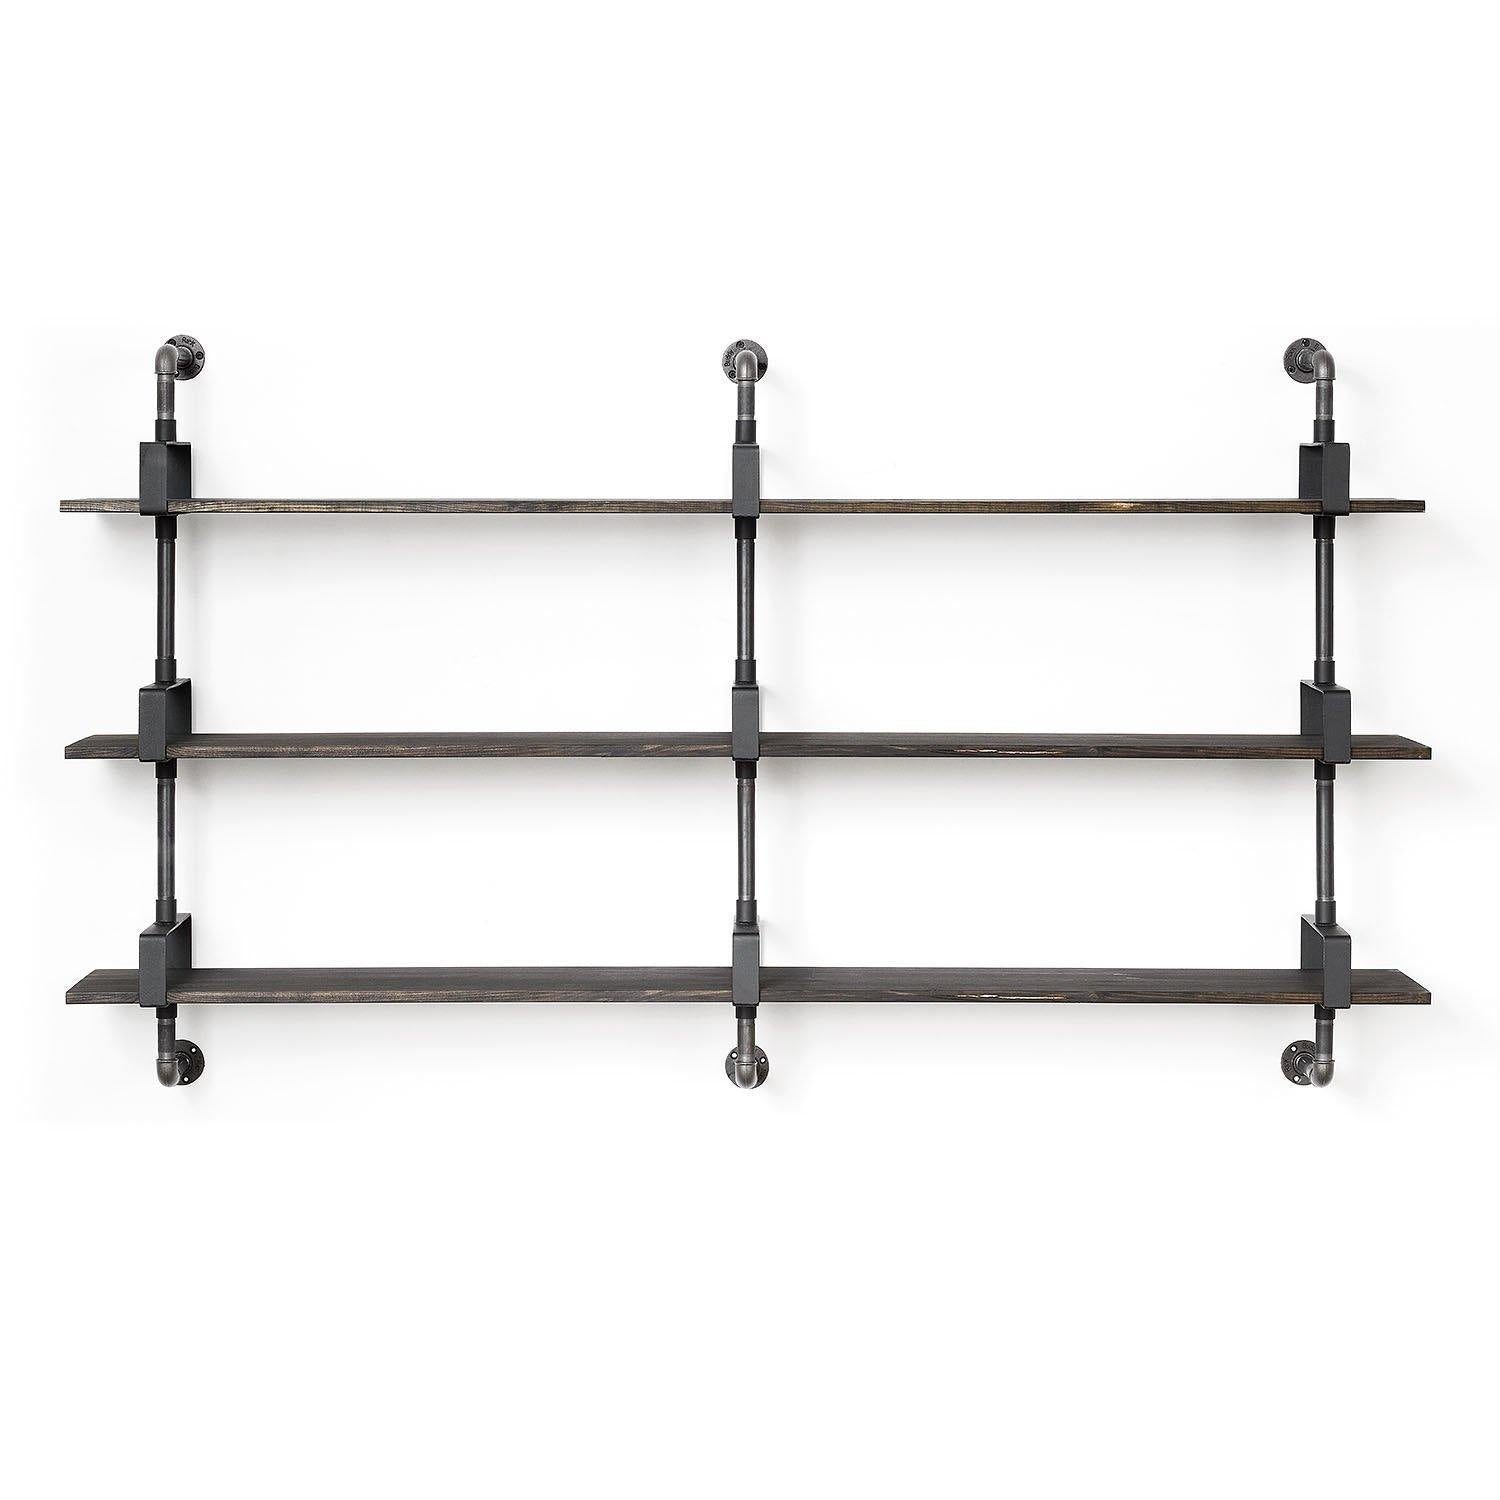 RackBuddy Shelfie - modular shelving system with 3 supports and three shelves